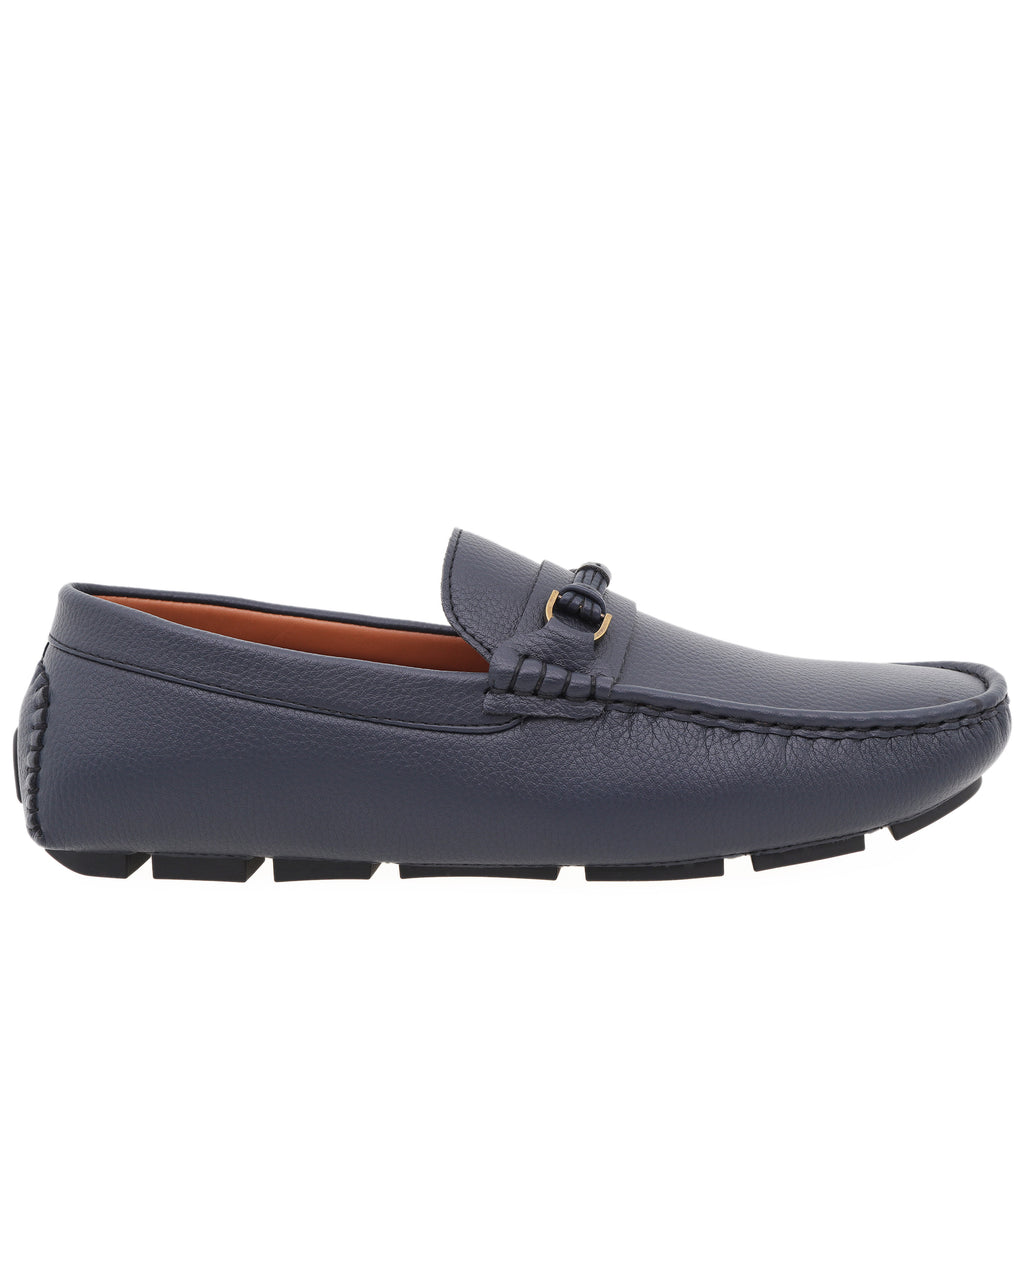 Tomaz C475 Buckle Leather Strap Moccasins (Navy)